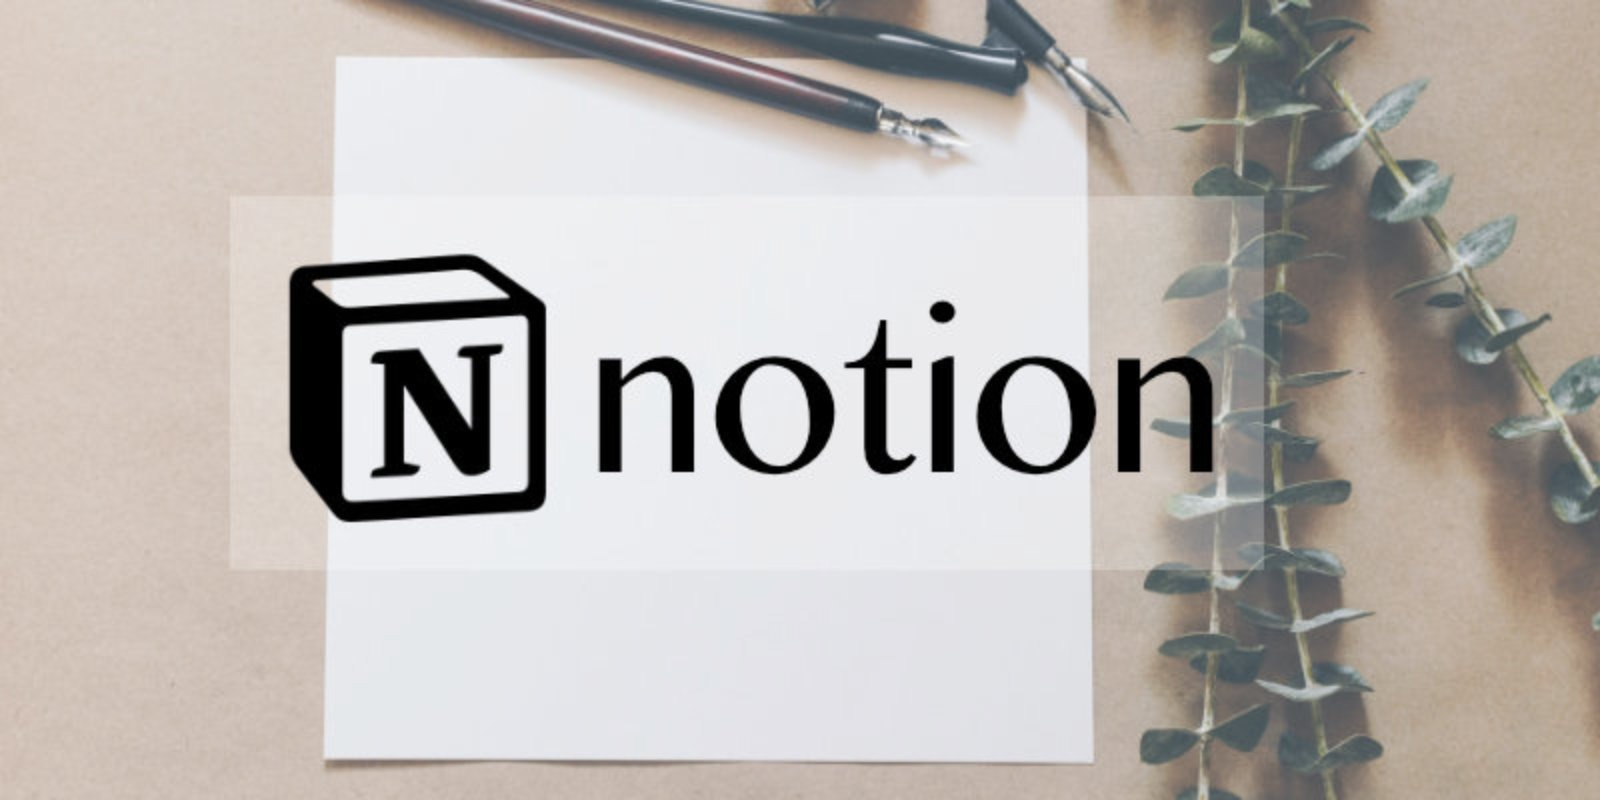 Notion - featured image